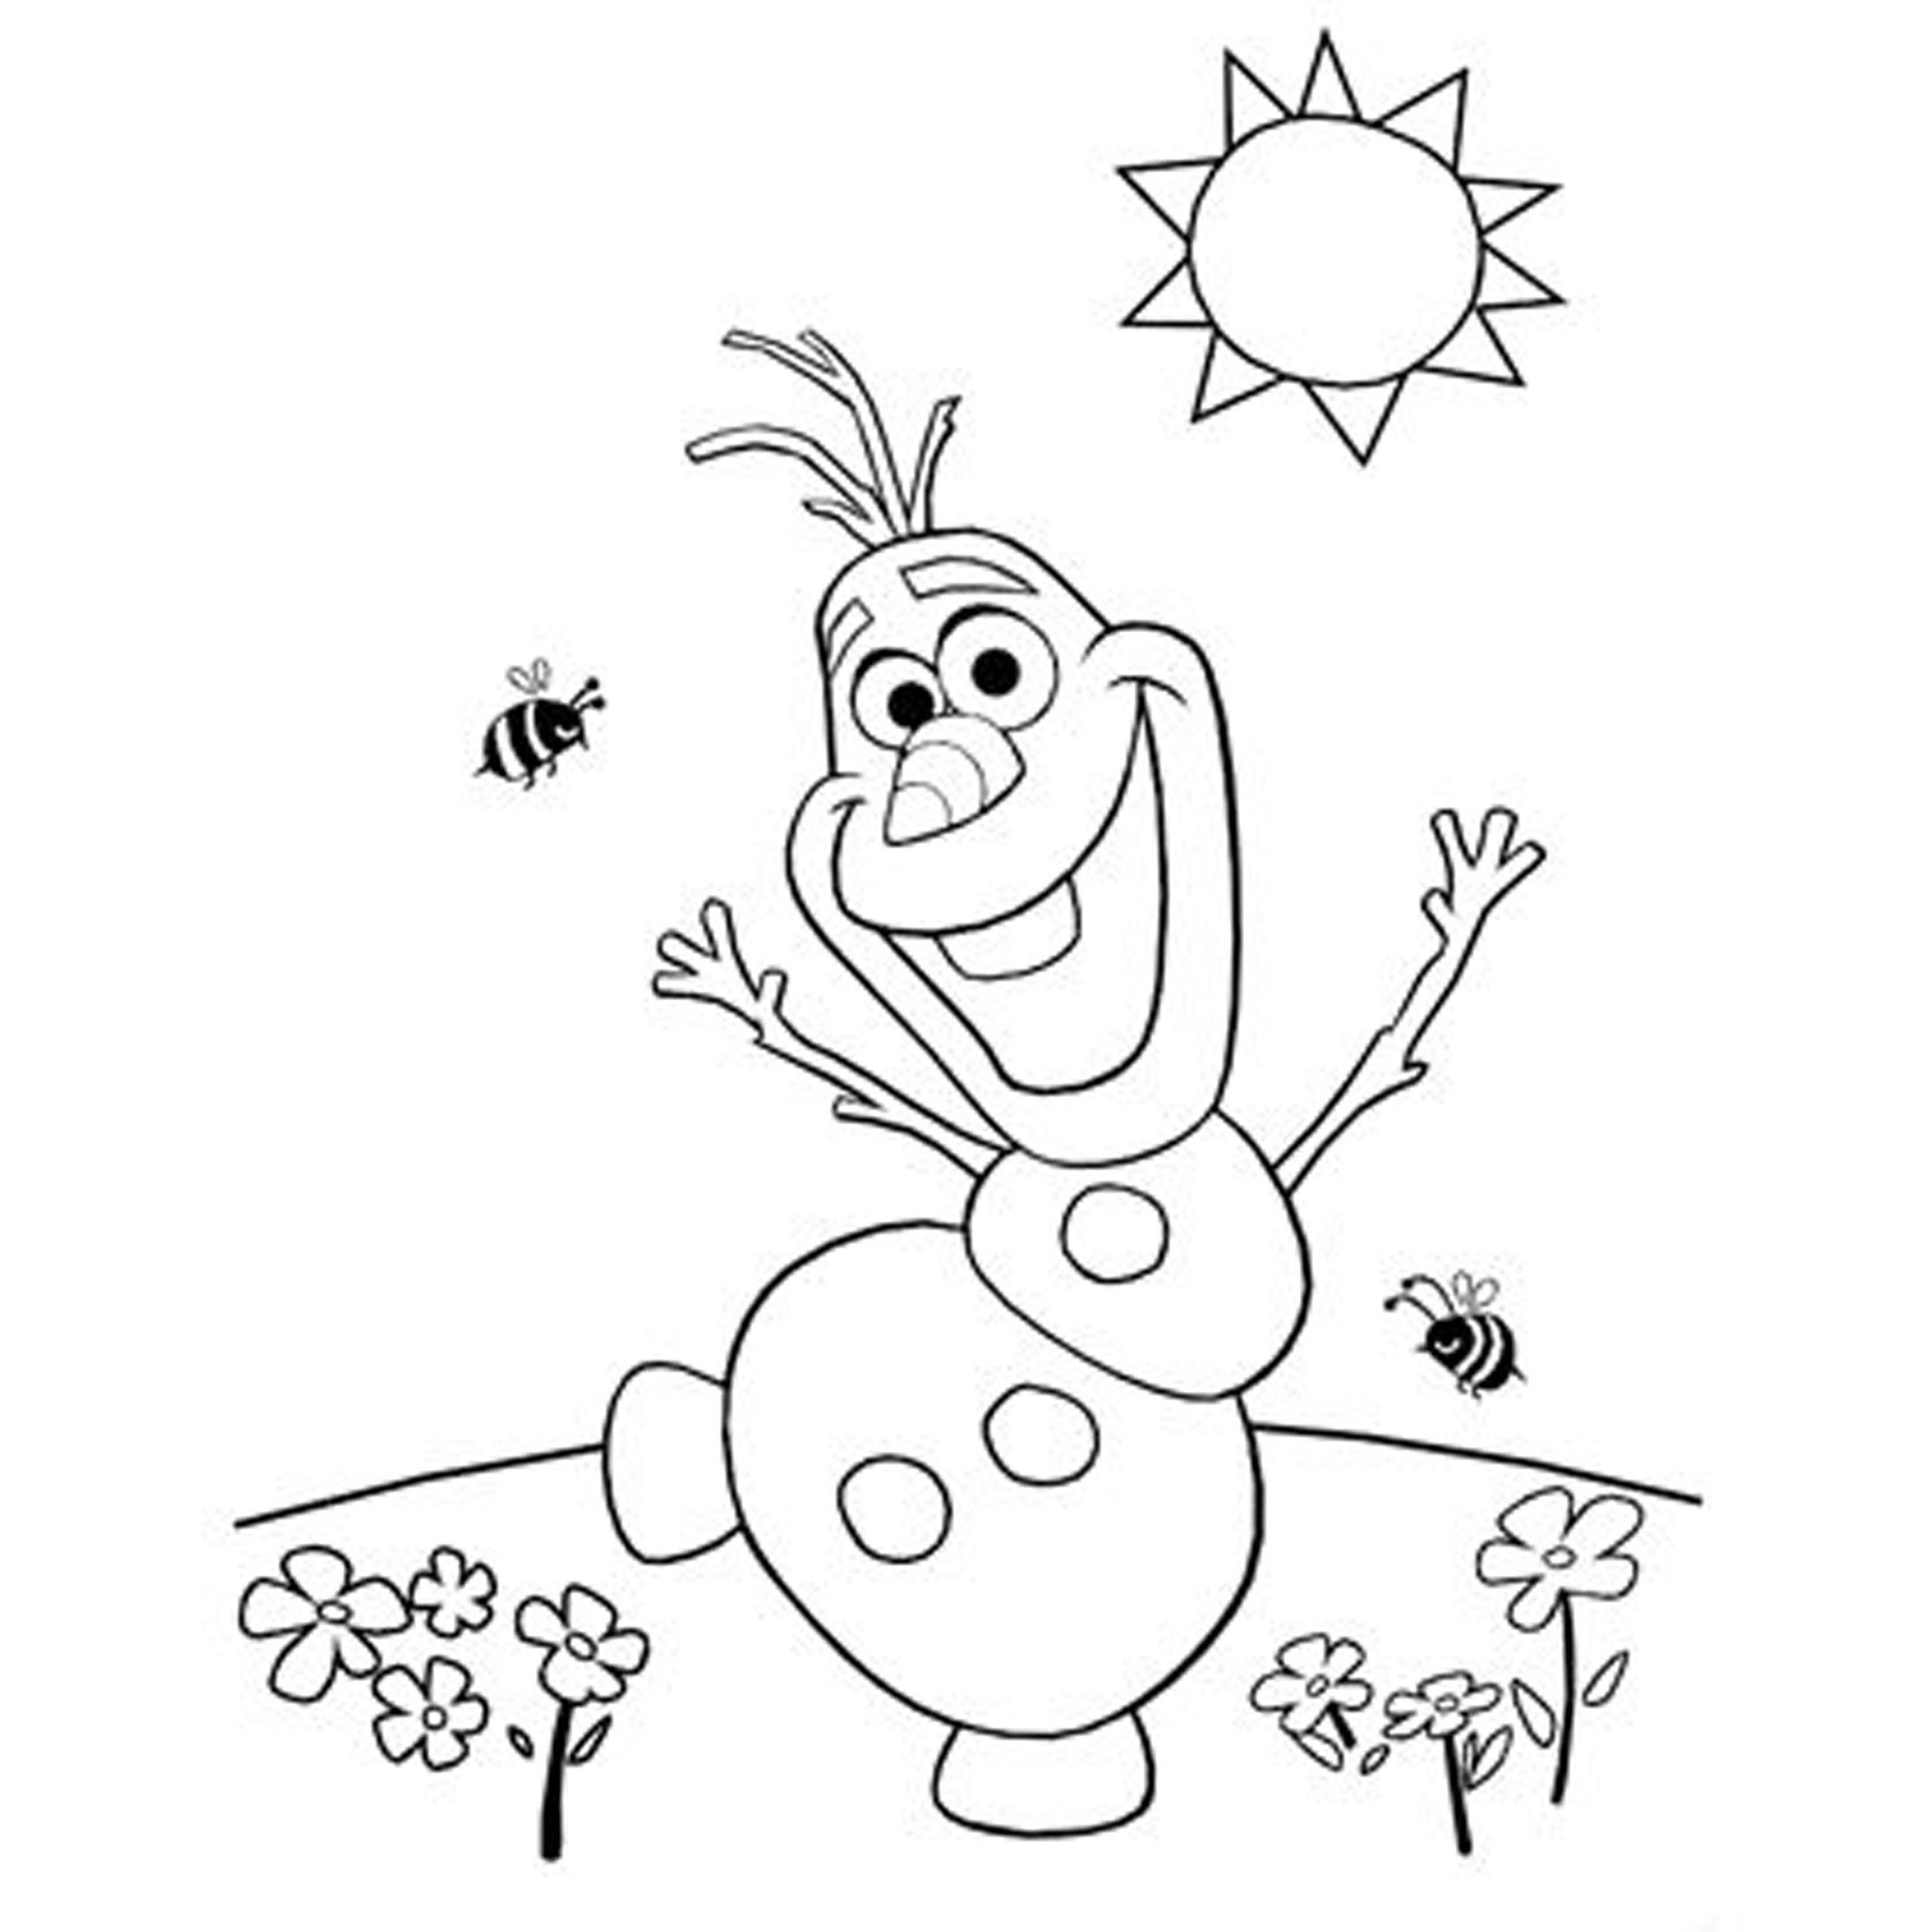 Coloring pages for girls frozen online - Free Olaf Coloring Pages For Kids Printable Sea4waterman